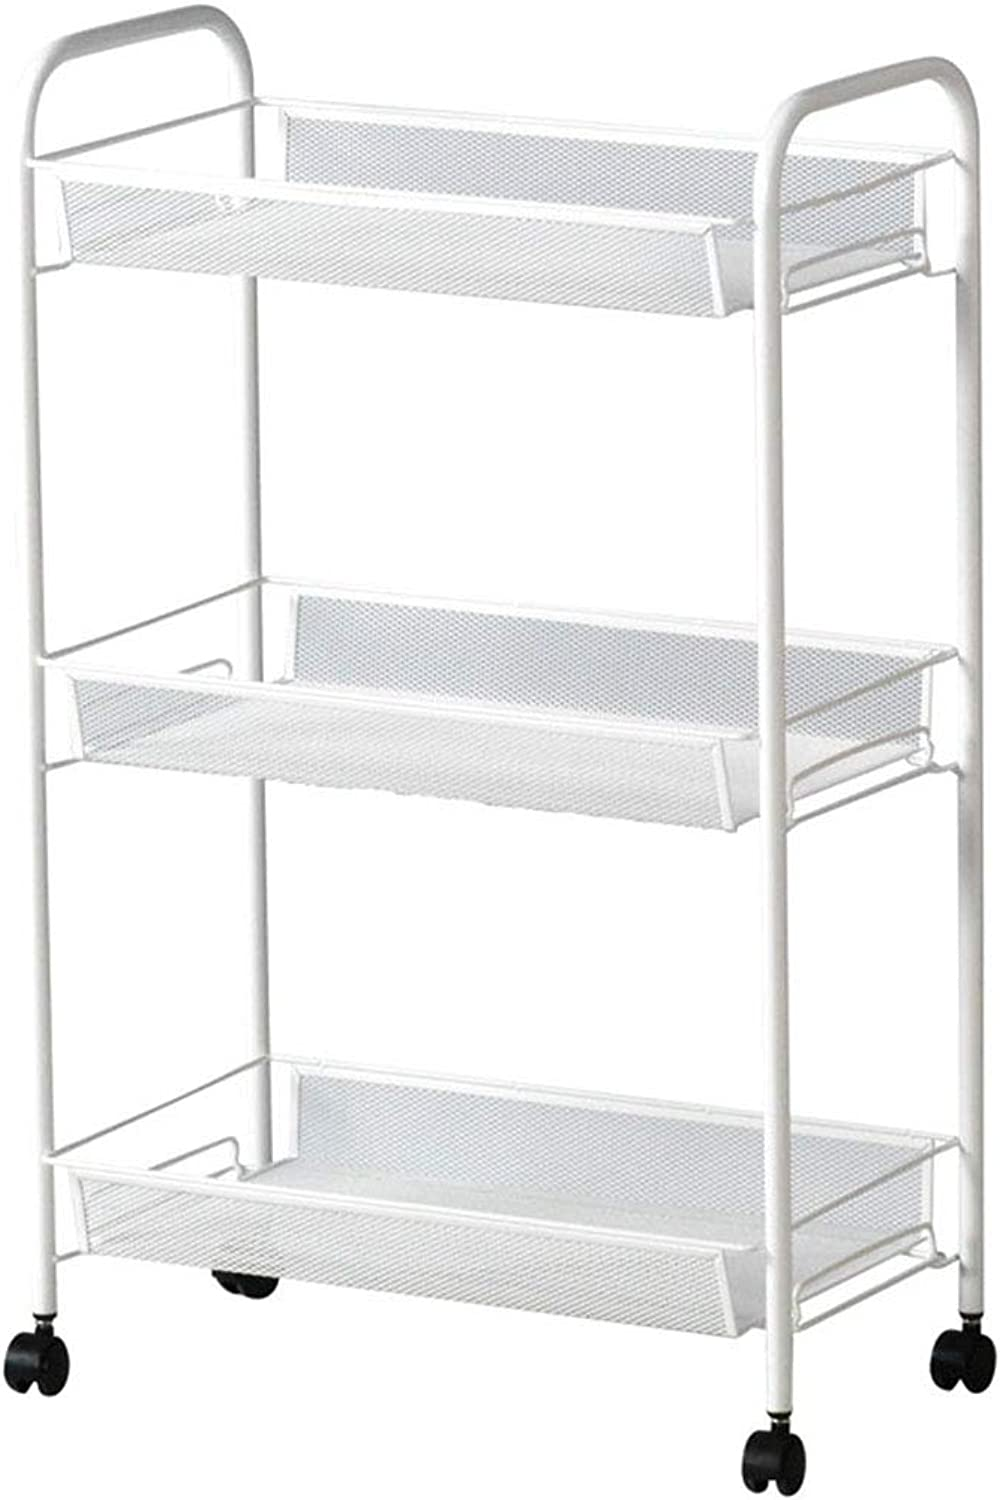 Kitchen Storage Shelf for Kitchen Bathroom Living Room Storage Rack with Pulleys Finishing Metal Three-Tier Rack Partition- White Organisation